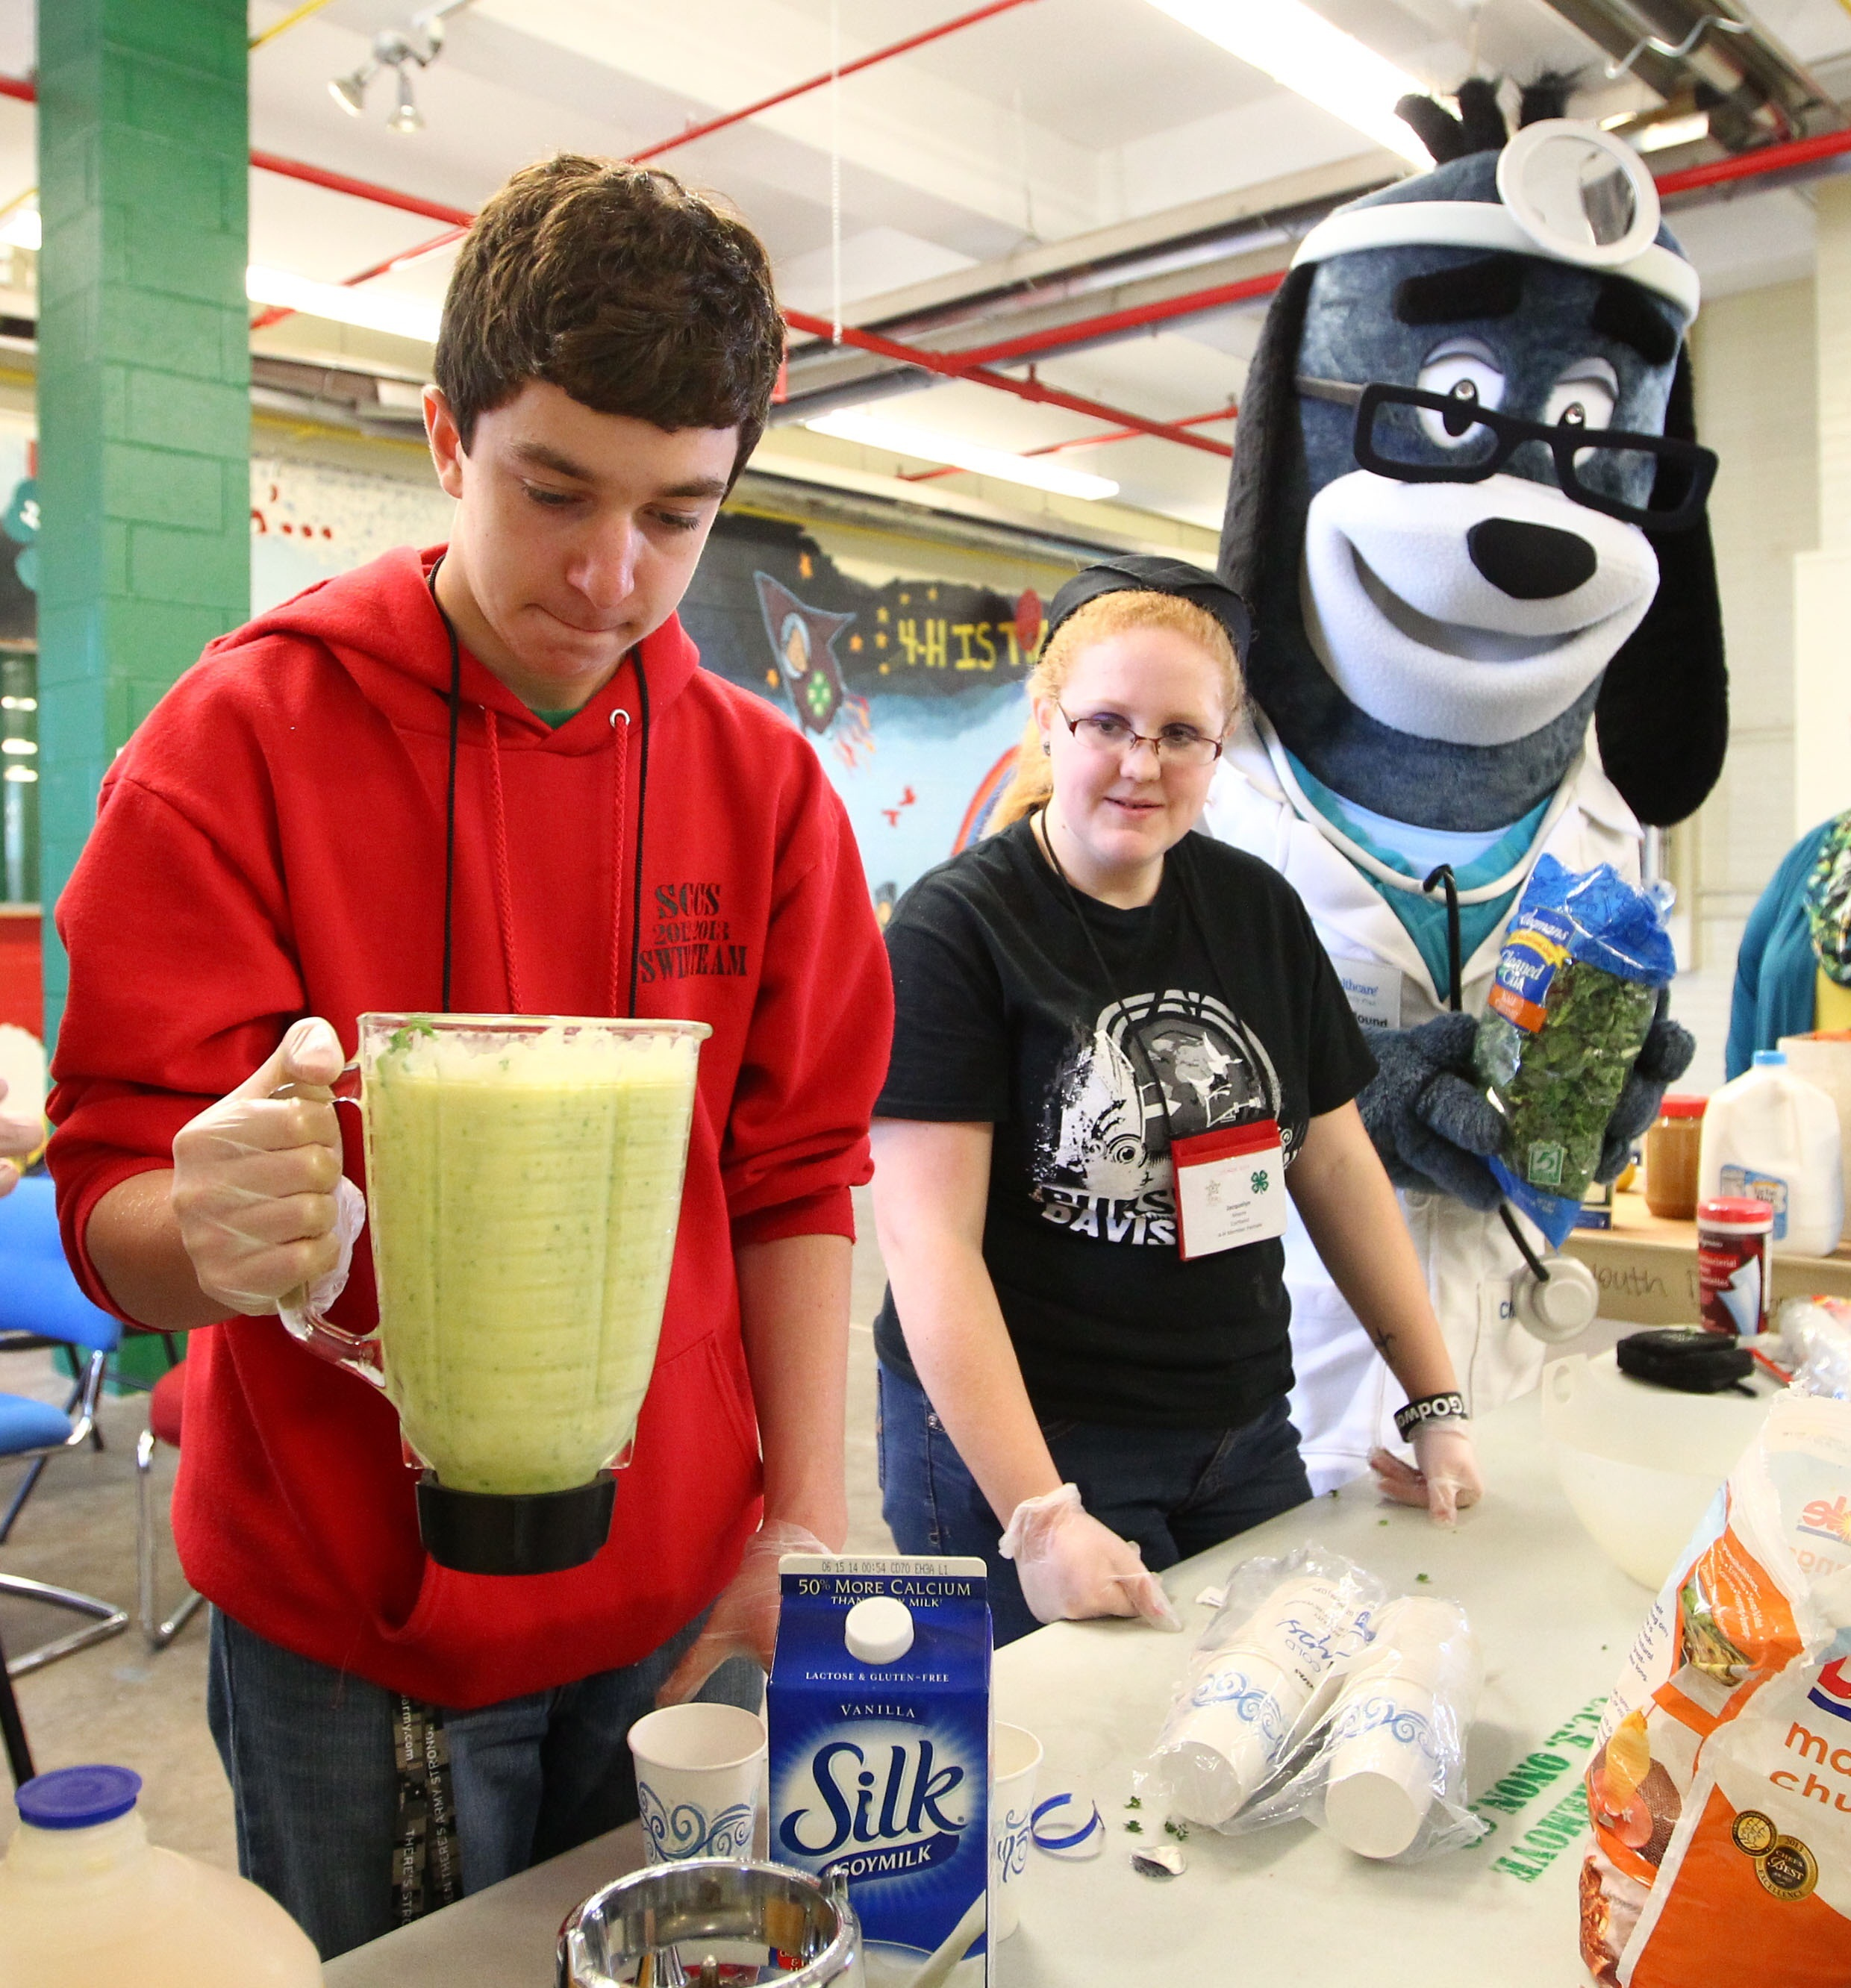 """Ben Davis, left, and Jacquelyn Moroe and UnitedHealthcare's mascot, Dr. Health E. Hound, make a healthy smoothie. Davis is from Moravia, Cayuga County, while Moore is from Marathon, Cortland County. They participated in interactive stations based on the """"Choose Health: Food, Fun, and Fitness"""" curriculum created in the Division of Nutritional Sciences at Cornell University. 4-H Youth also had the opportunity to make their own healthy smoothies with renewable energy bikes equipped with specially installed pedal-powered blenders at the New York State Fairgrounds in Syracuse, N.Y., on Saturday, April 12, 2014. (Photos by Michael J. Okoniewski)"""